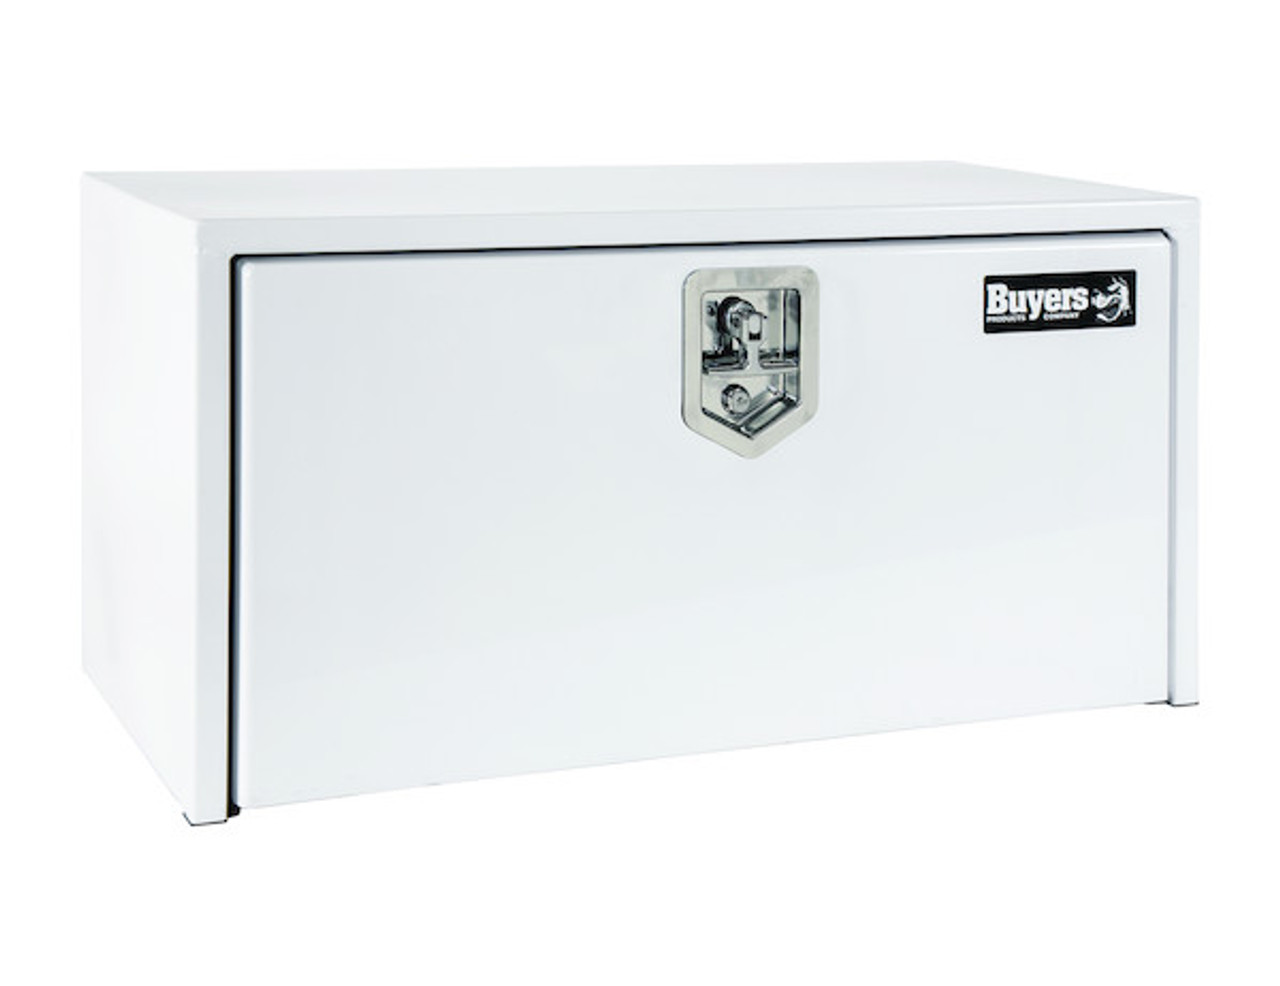 1703403 BUYERS PRODUCTS WHITE STEEL UNDERBODY TRUCK BOX TOOLBOX